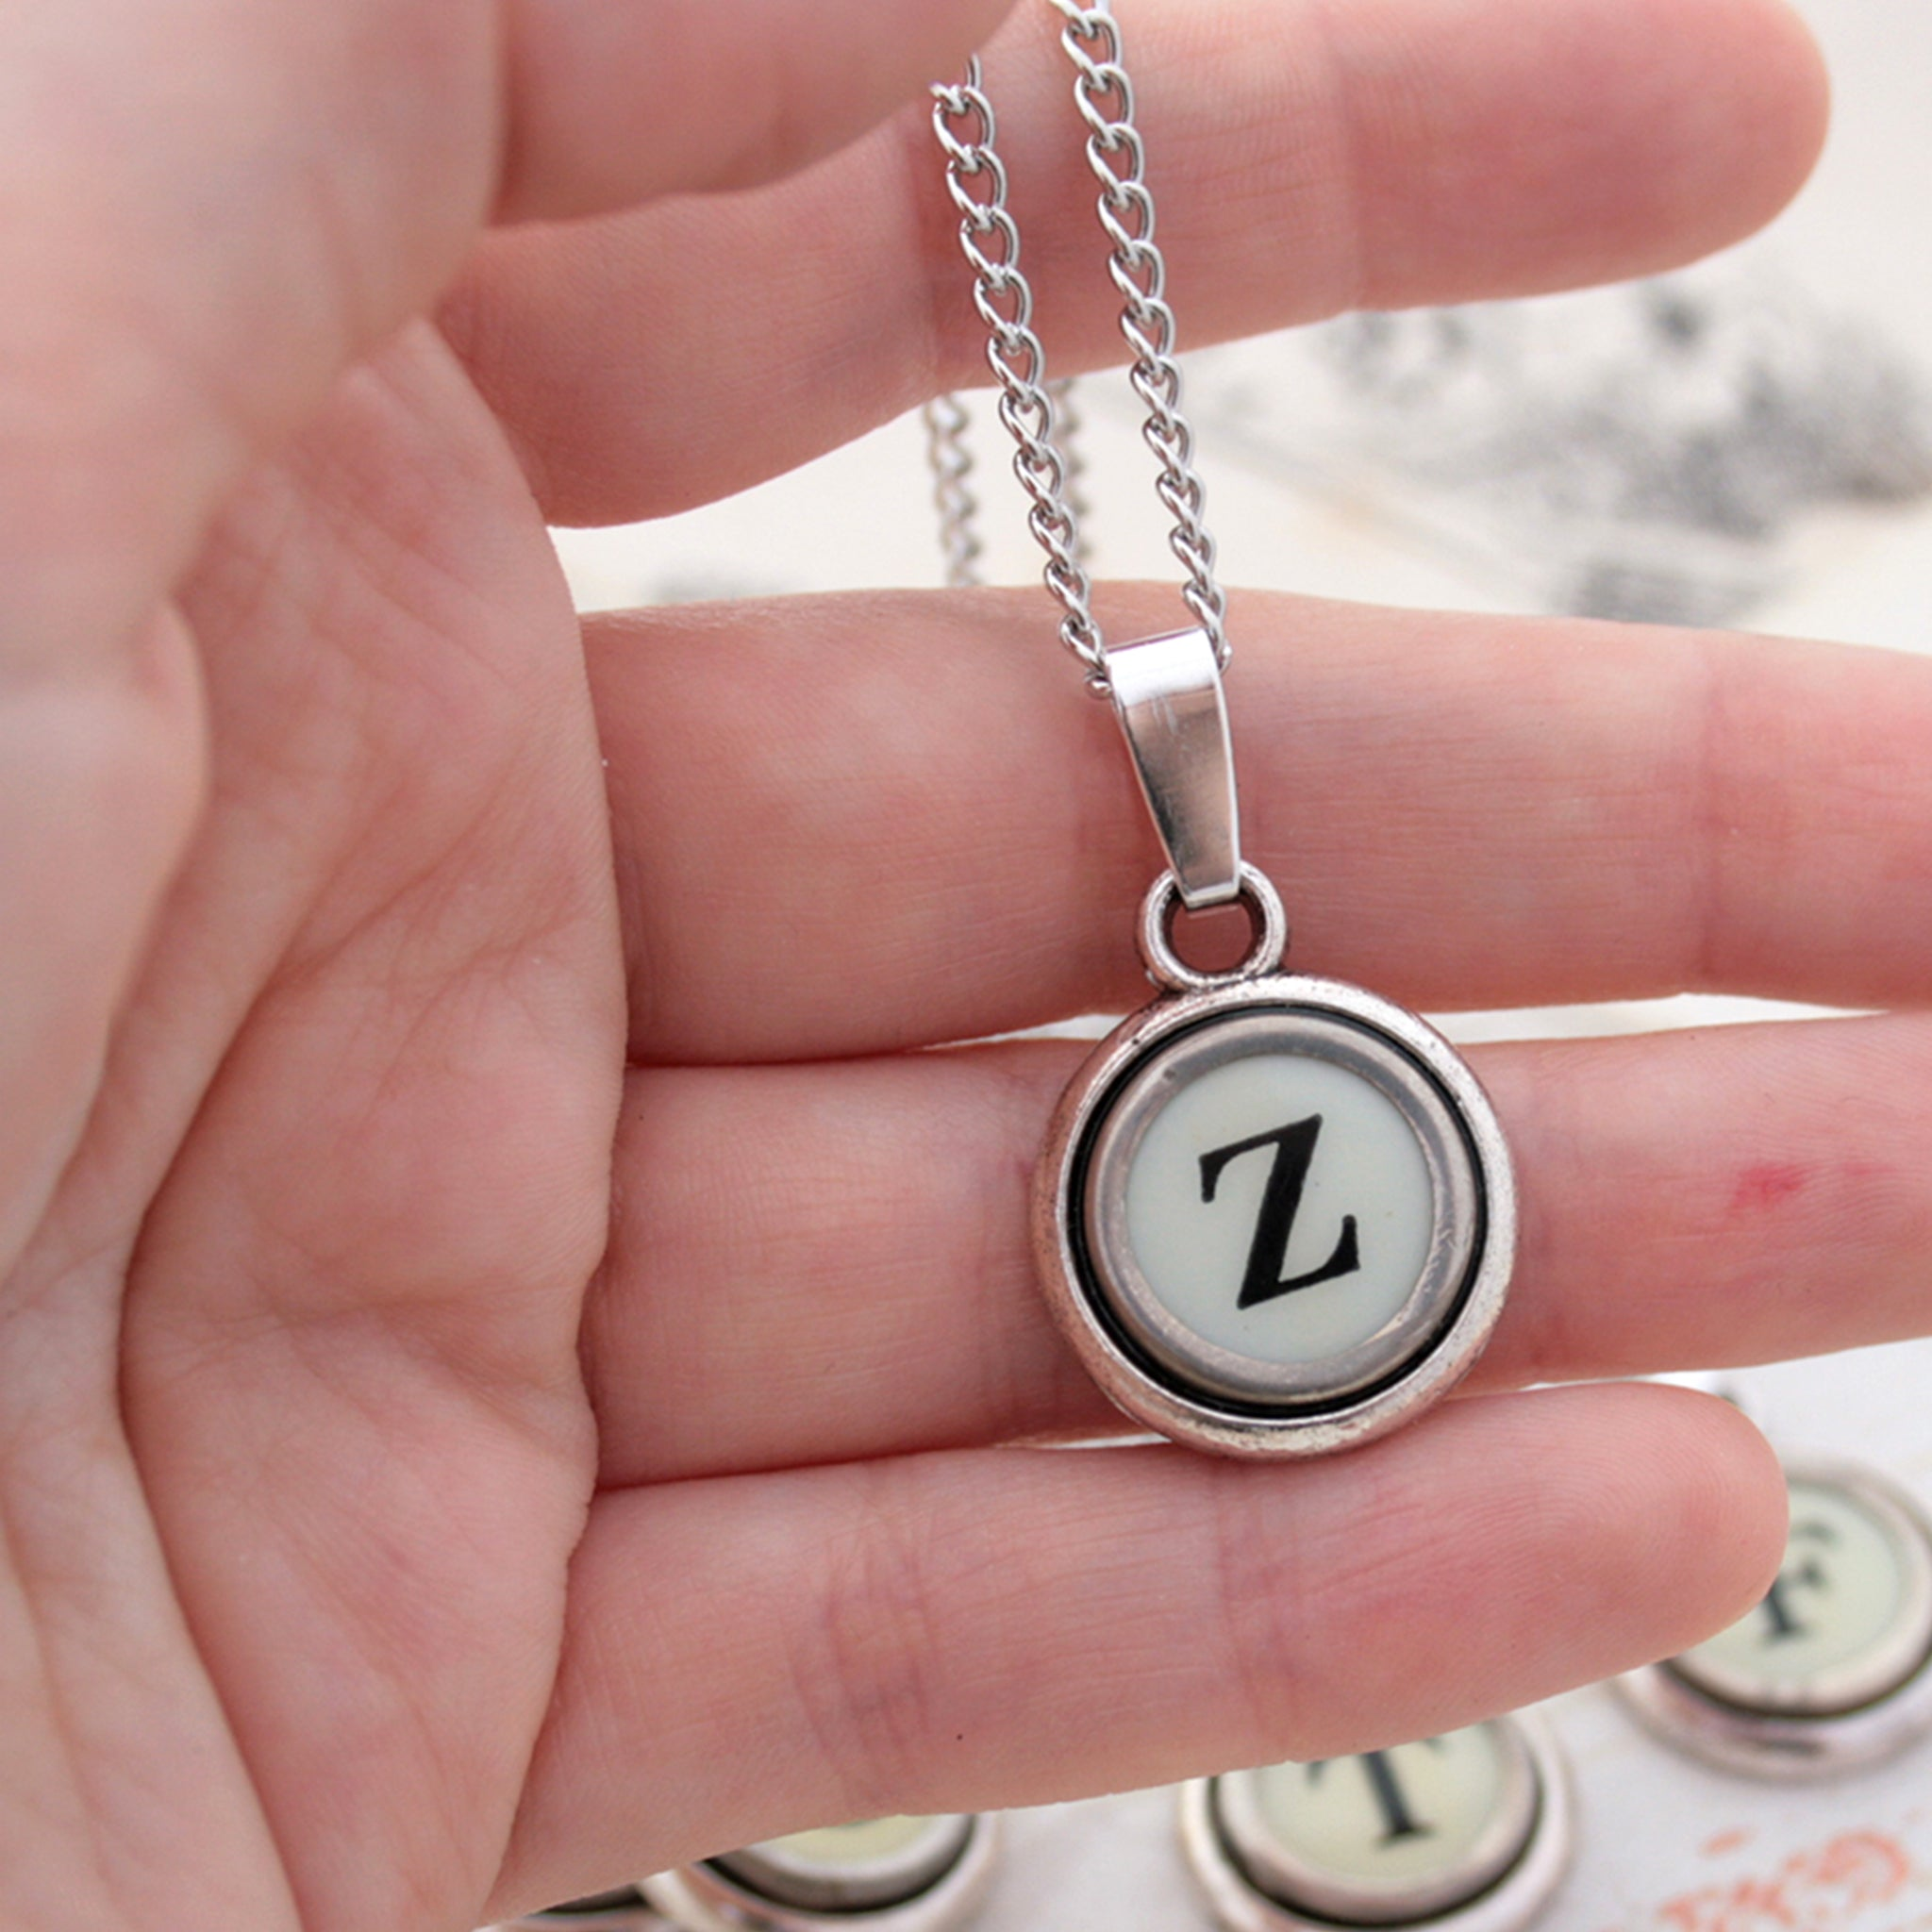 Ivory Z letter necklace made of typewriter key hold in hand